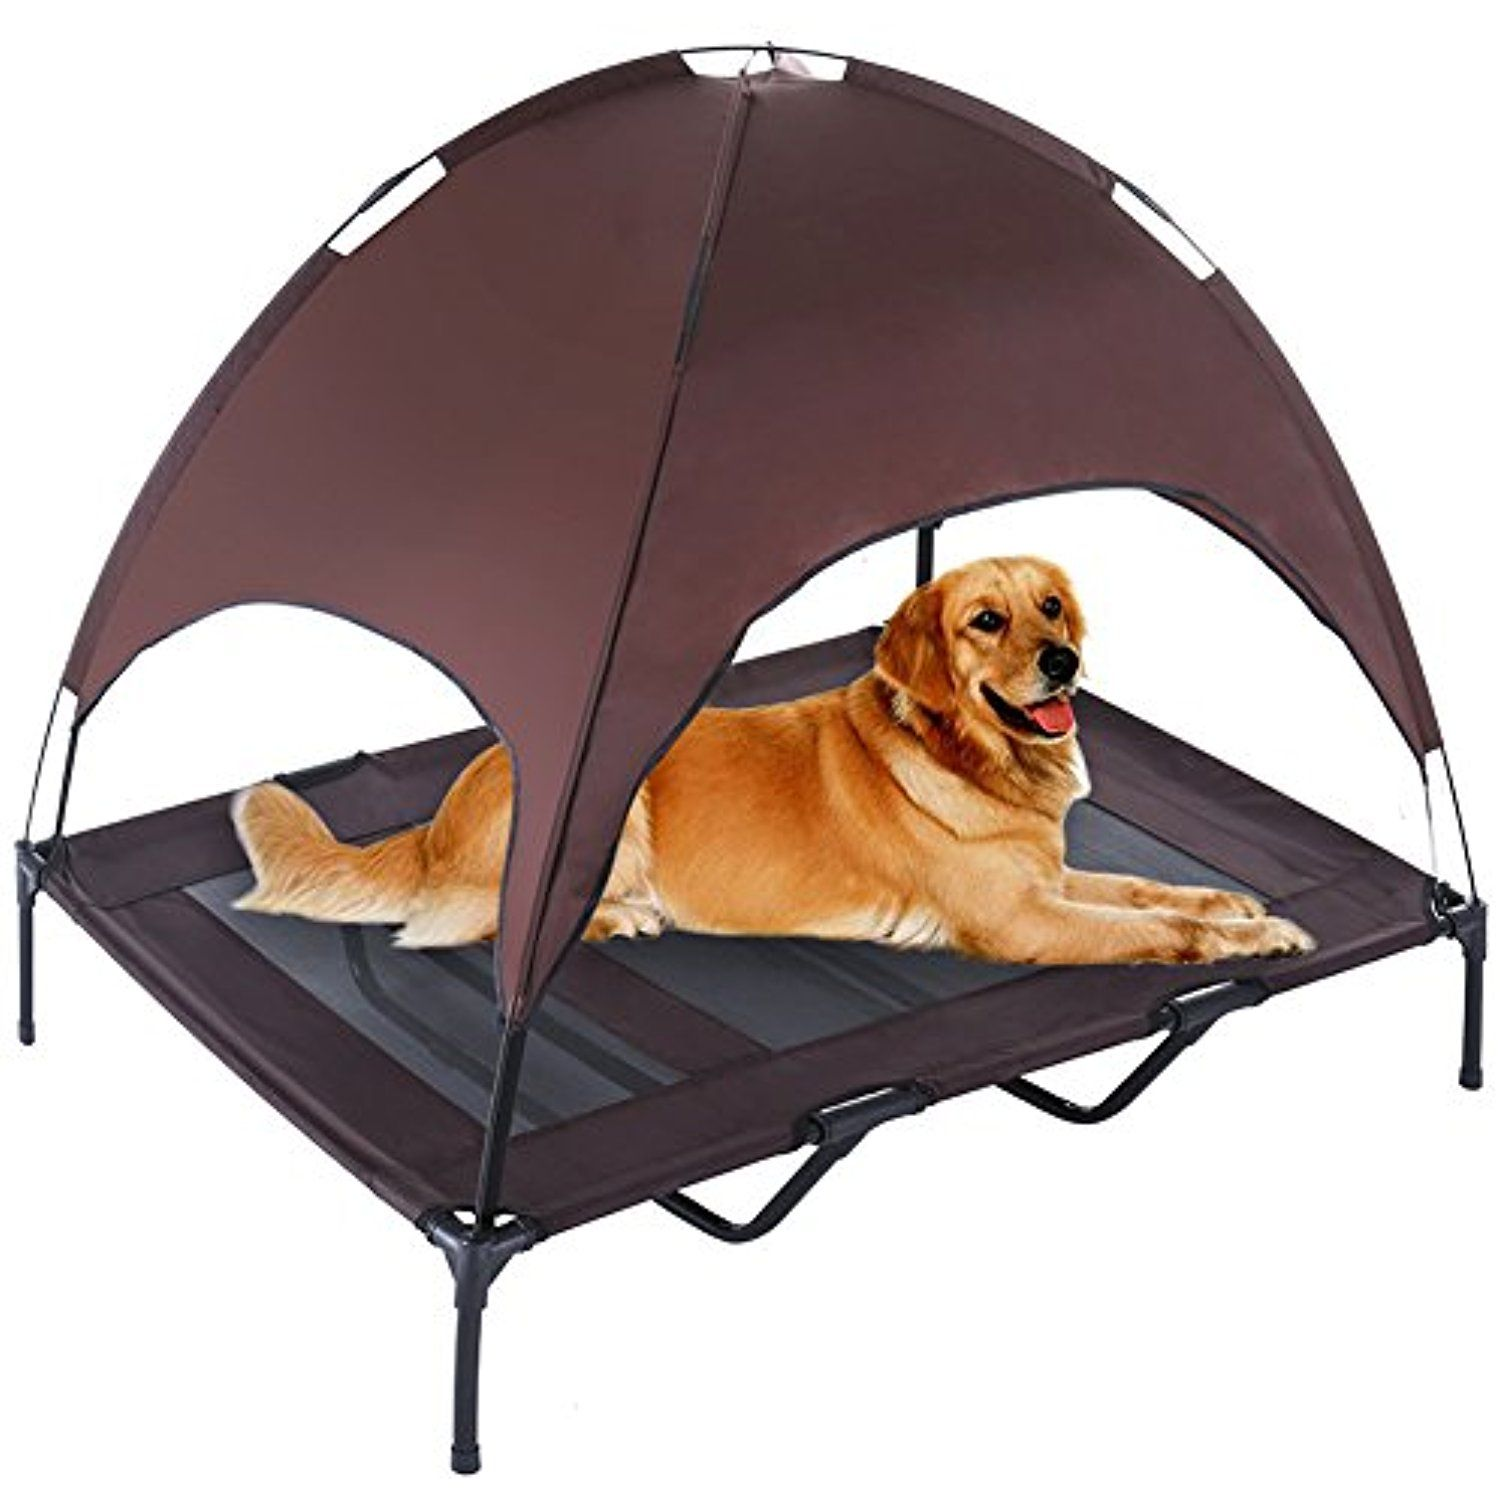 Xlarge Cooling Dog Cot With Canopy Superjare Elevated Pet Bed